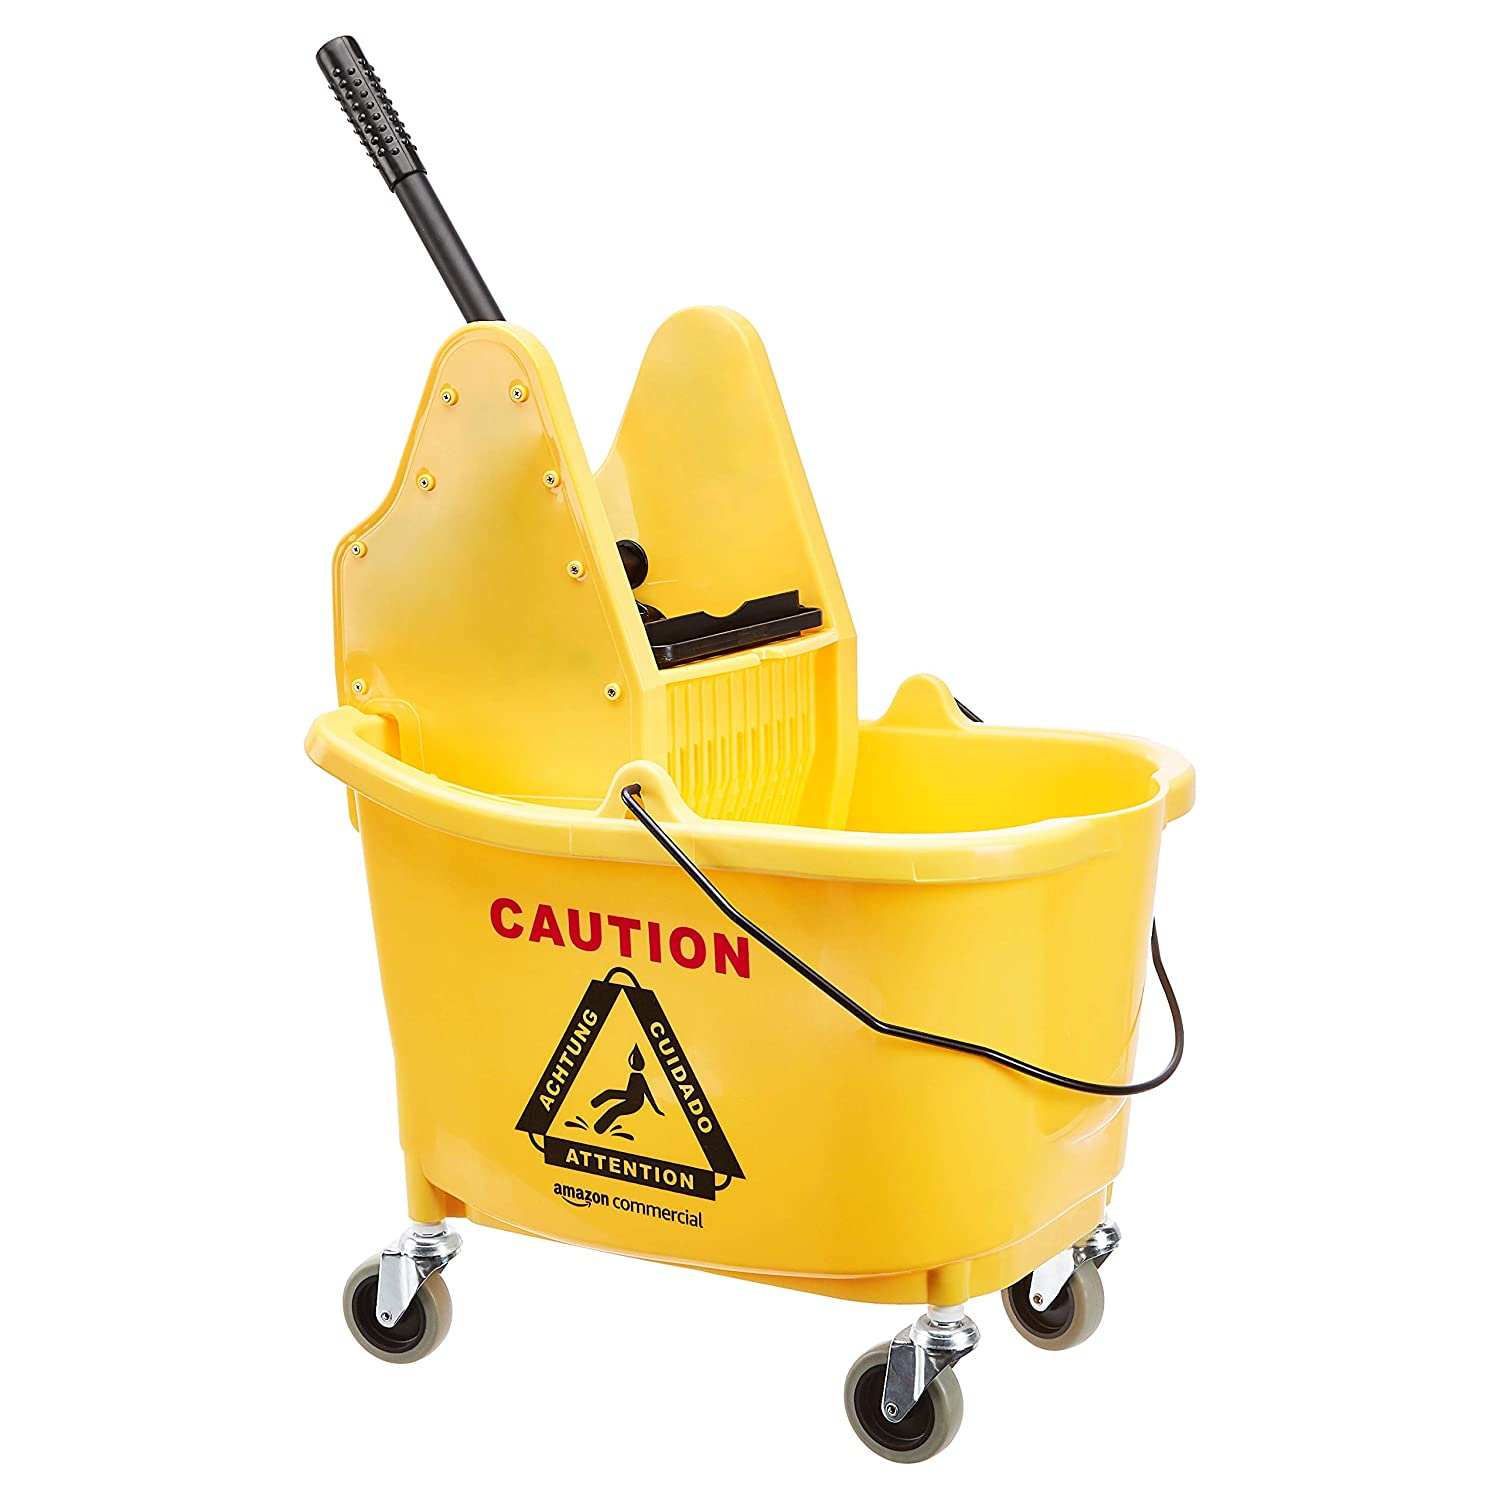 AmazonCommercial Mop Bucket and Down Press Wringer Combo, 35-Quart, Yellow